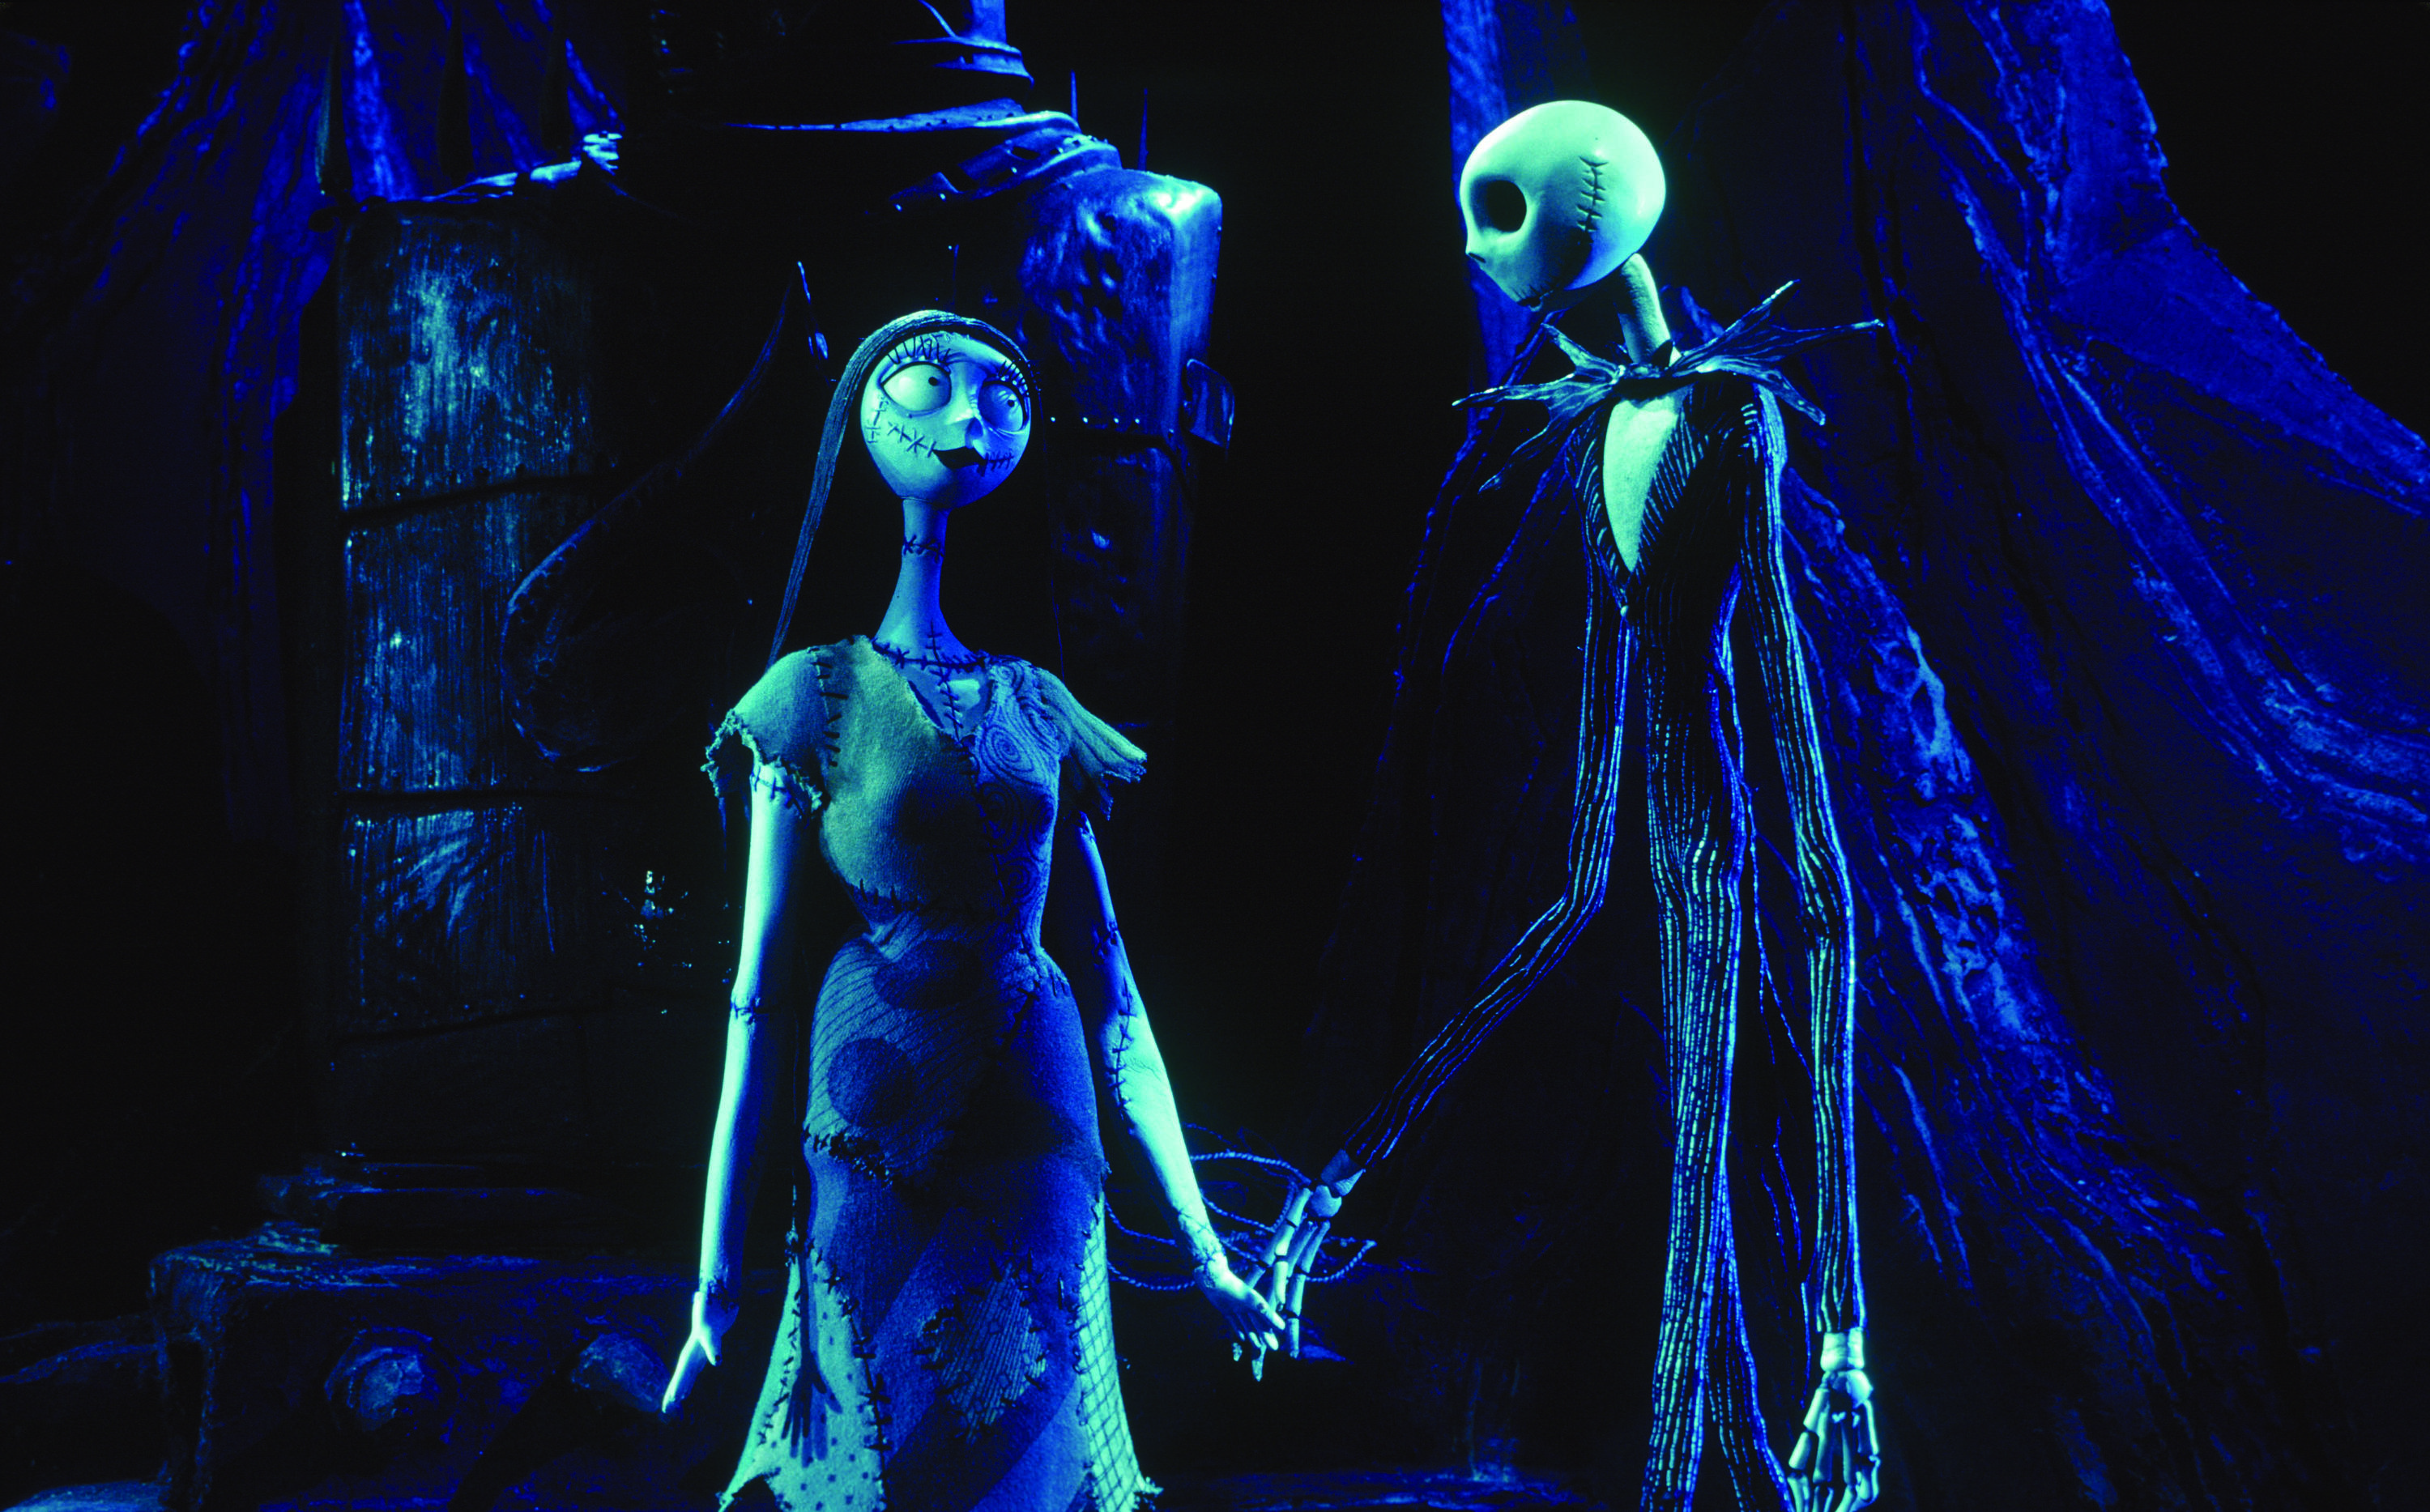 the nightmare before christmas 1993 - Halloween Movies Rated Pg